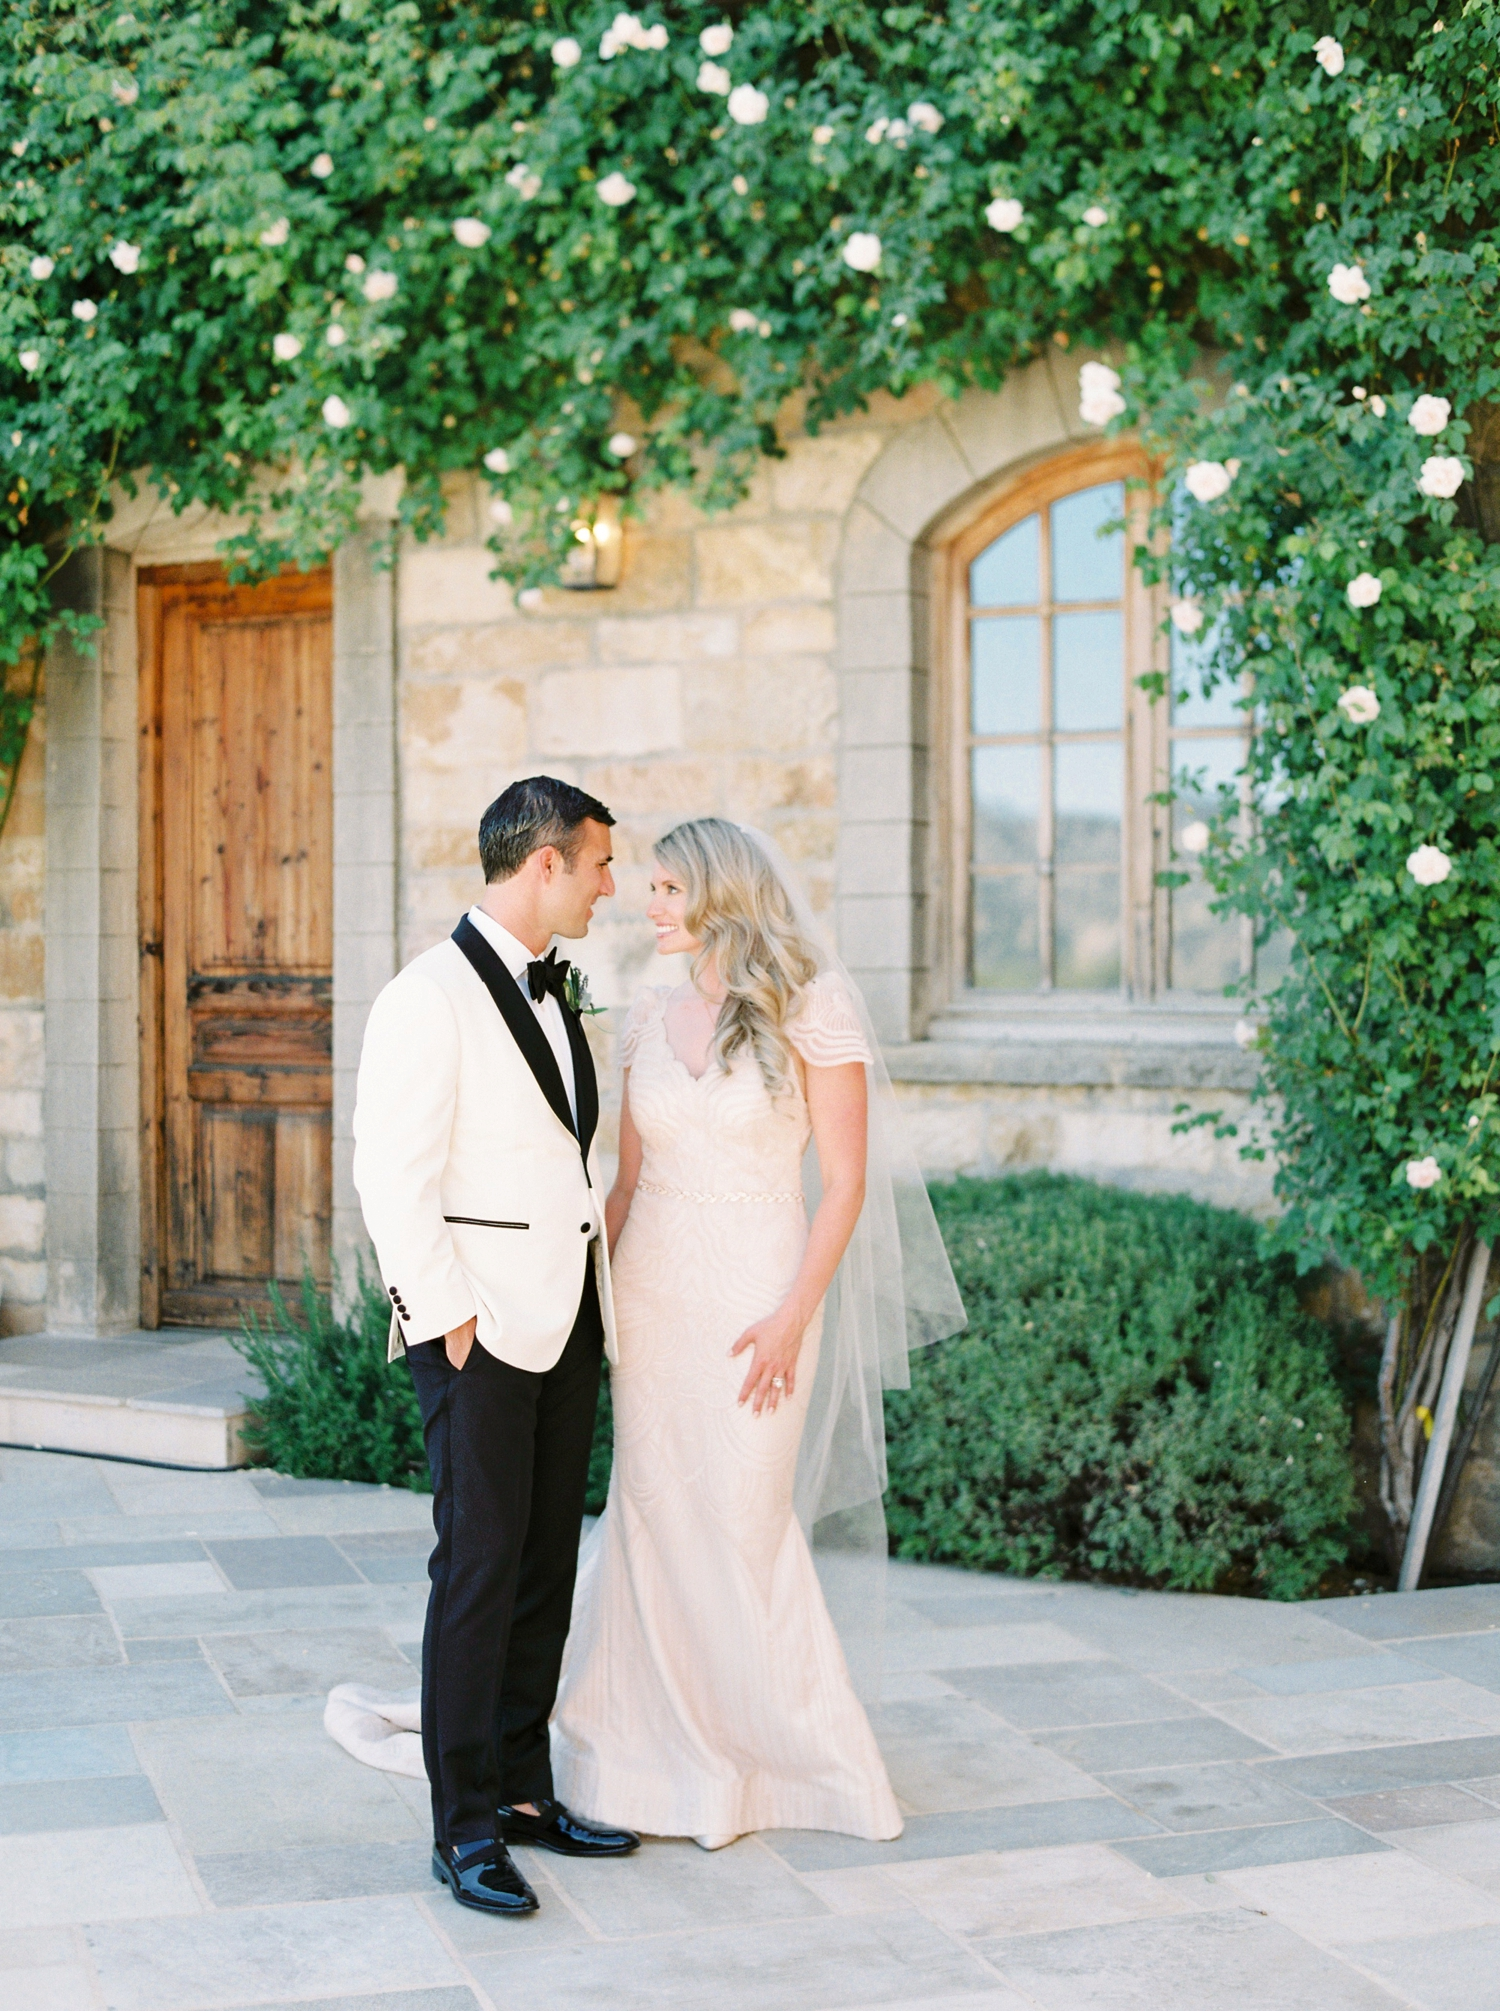 Sunstone Winery and Villa | California Wedding Photographers | Santa Barbara Wedding Photography | Santa Ynez Wedding | Justine Milton Photographer | Fine Art Film | Bride and Groom Portraits